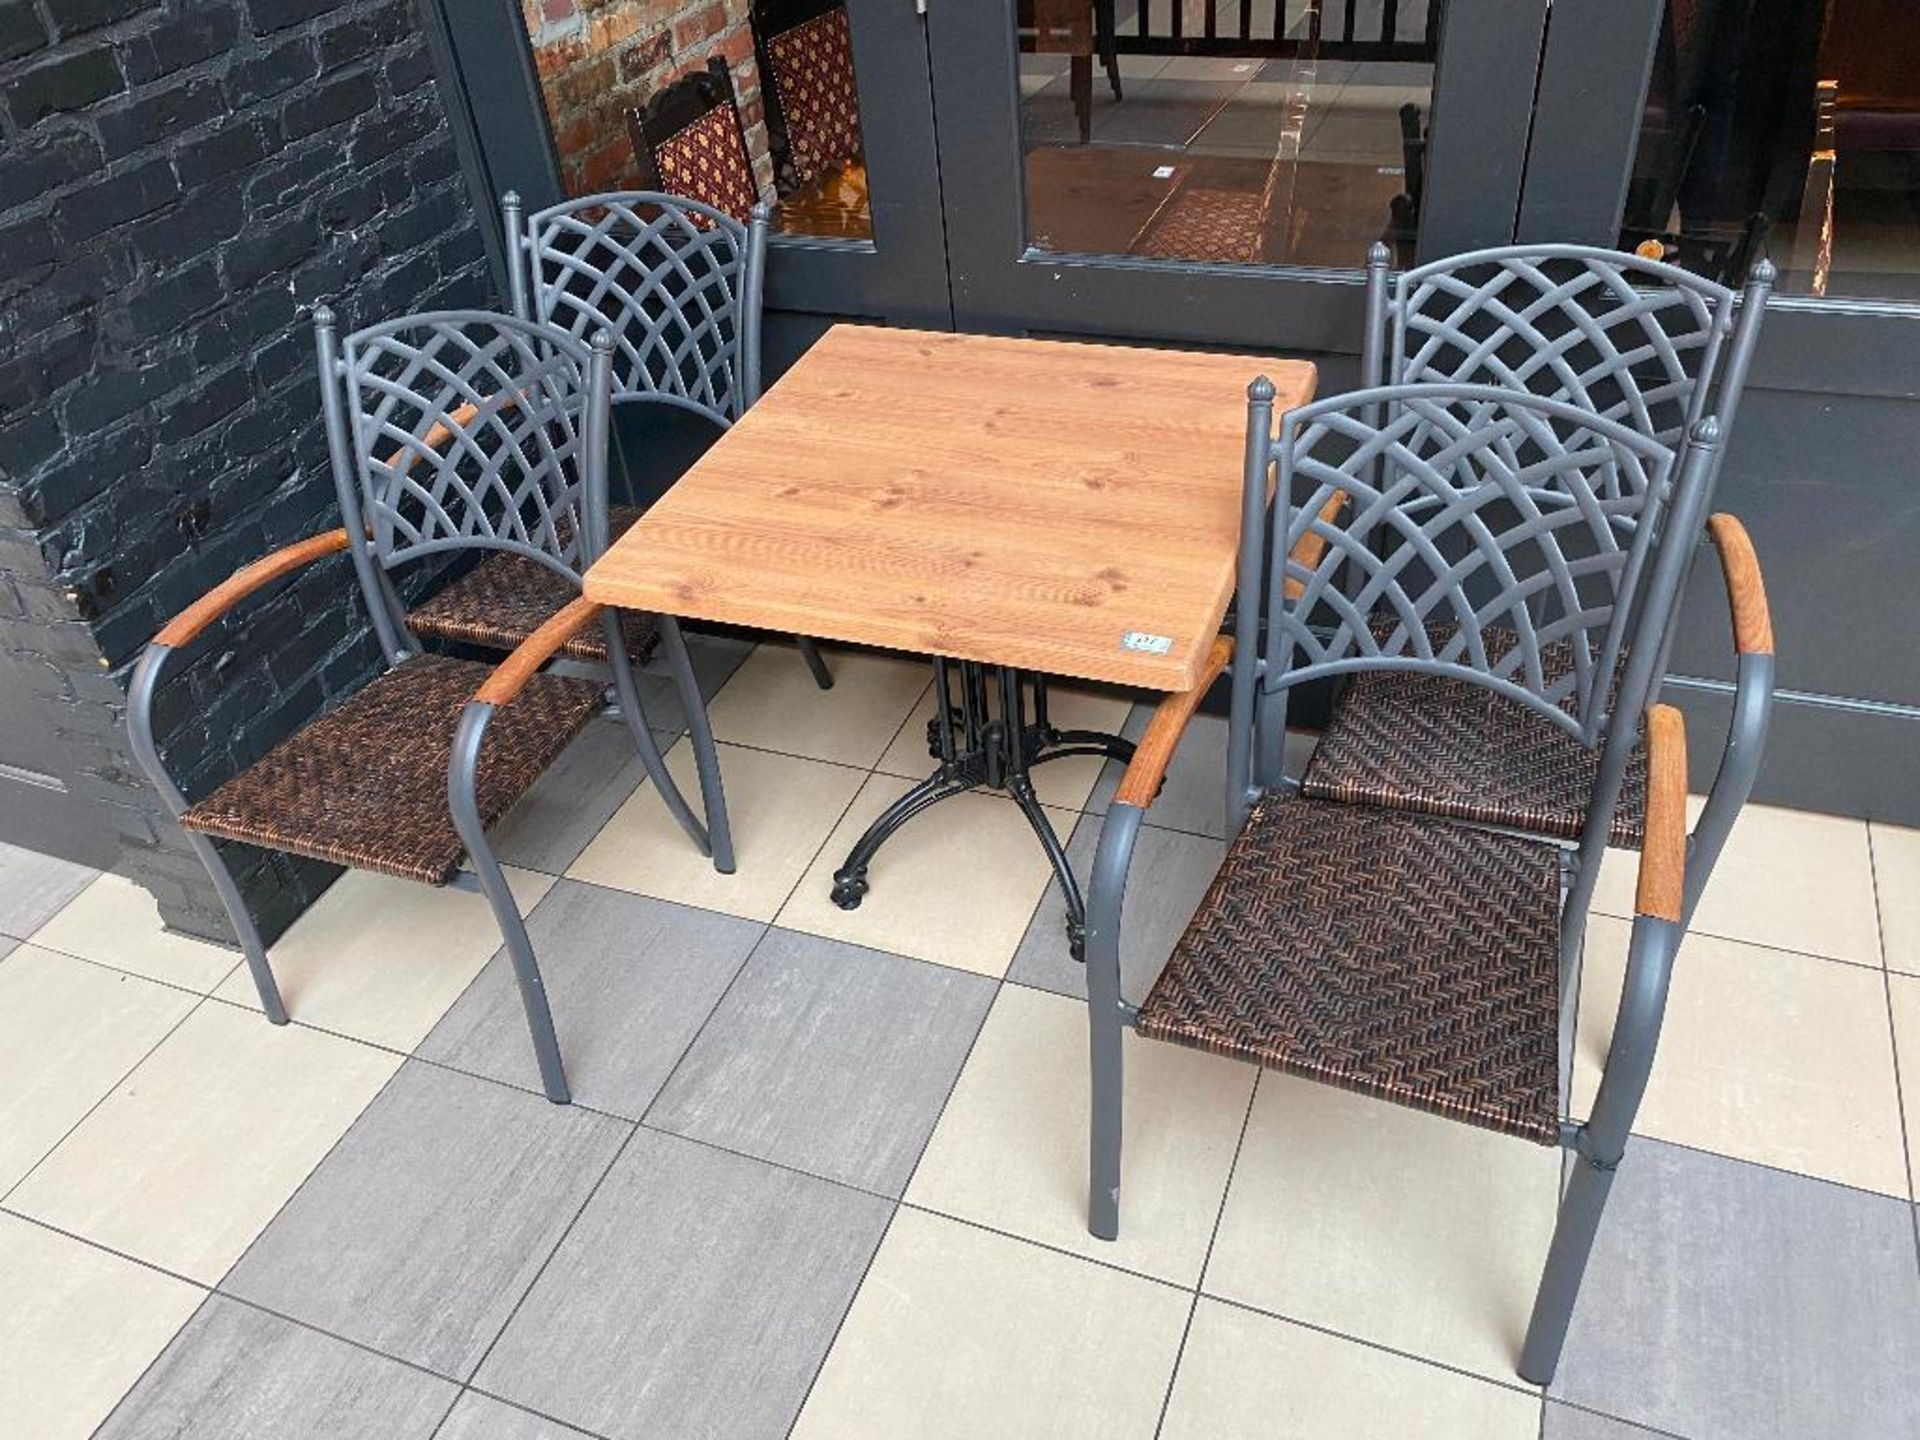 """TOPALIT 31"""" X 31"""" PATIO TABLE WITH 4 CHAIRS - Image 2 of 2"""